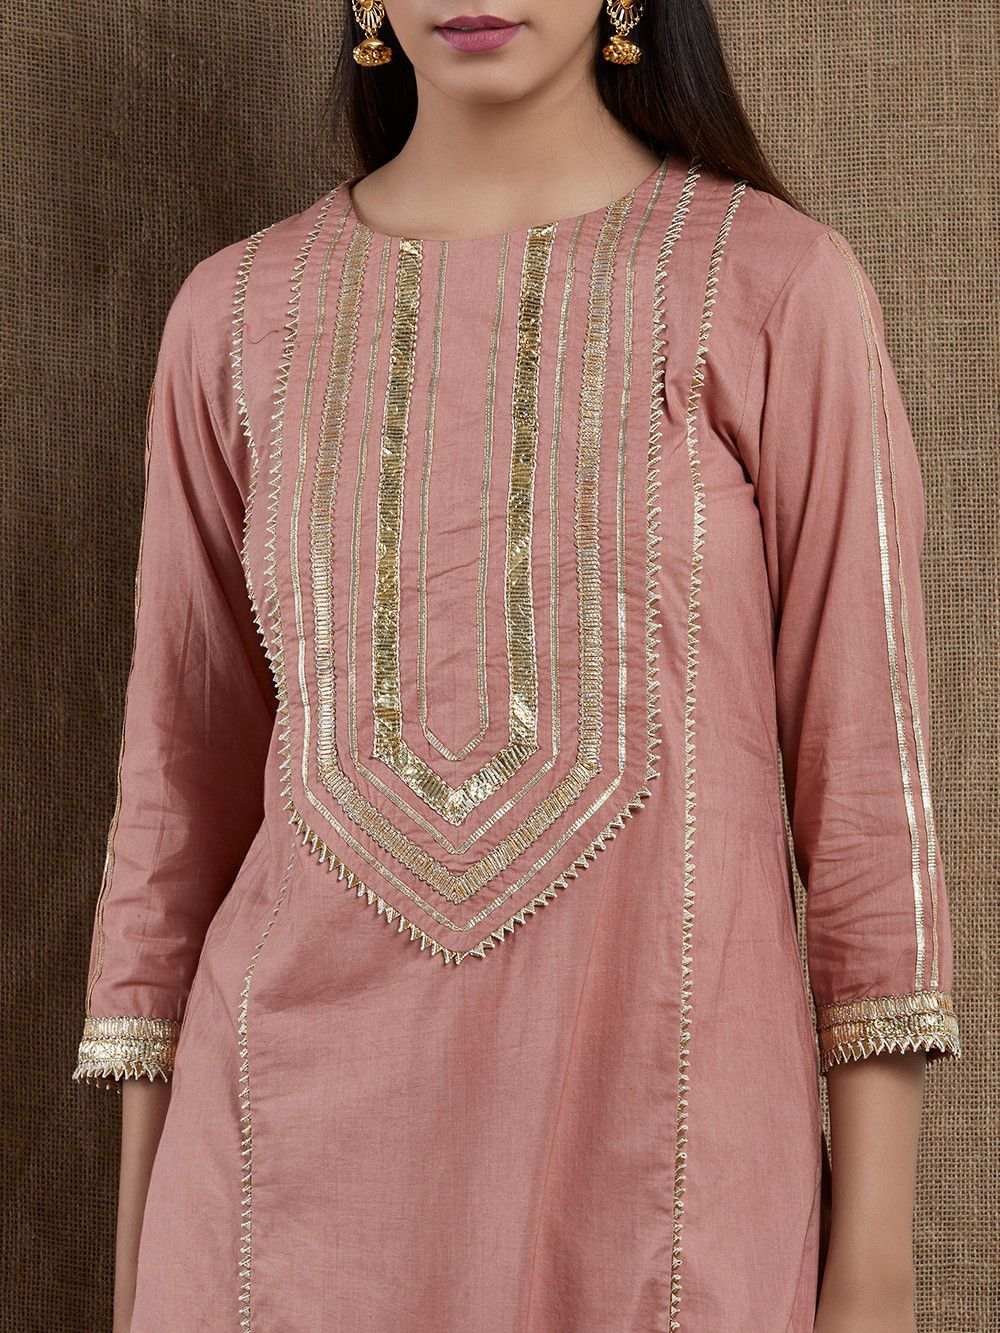 Party Wear Heavy Kurtis For Marriage (15)